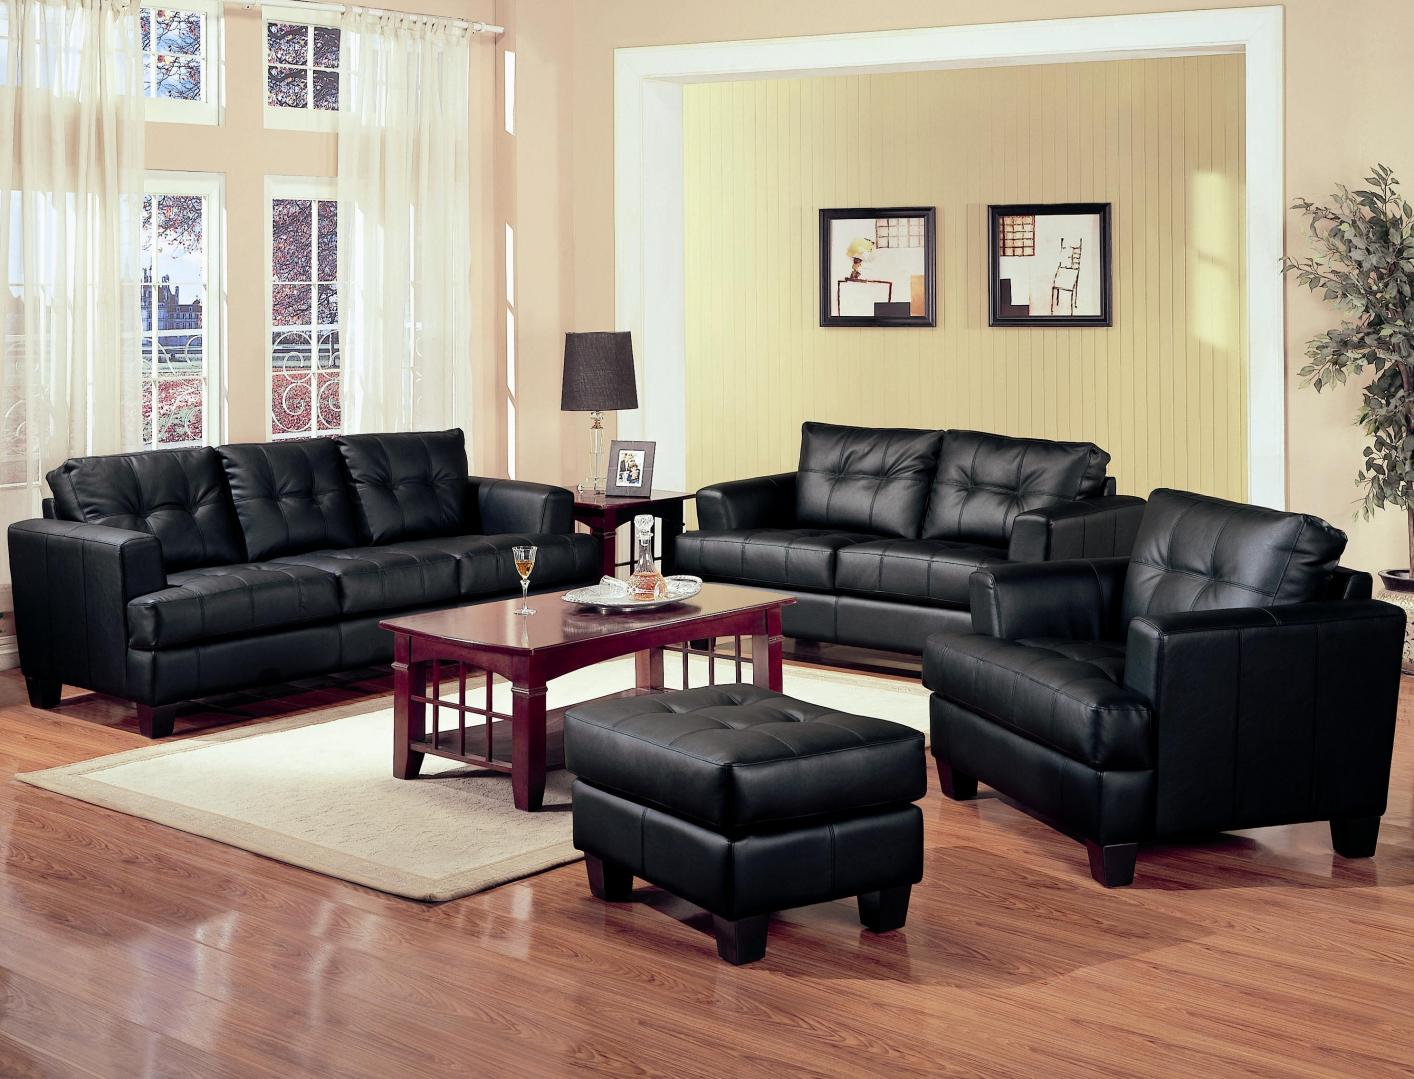 samuel black leather sofa - steal-a-sofa furniture outlet los